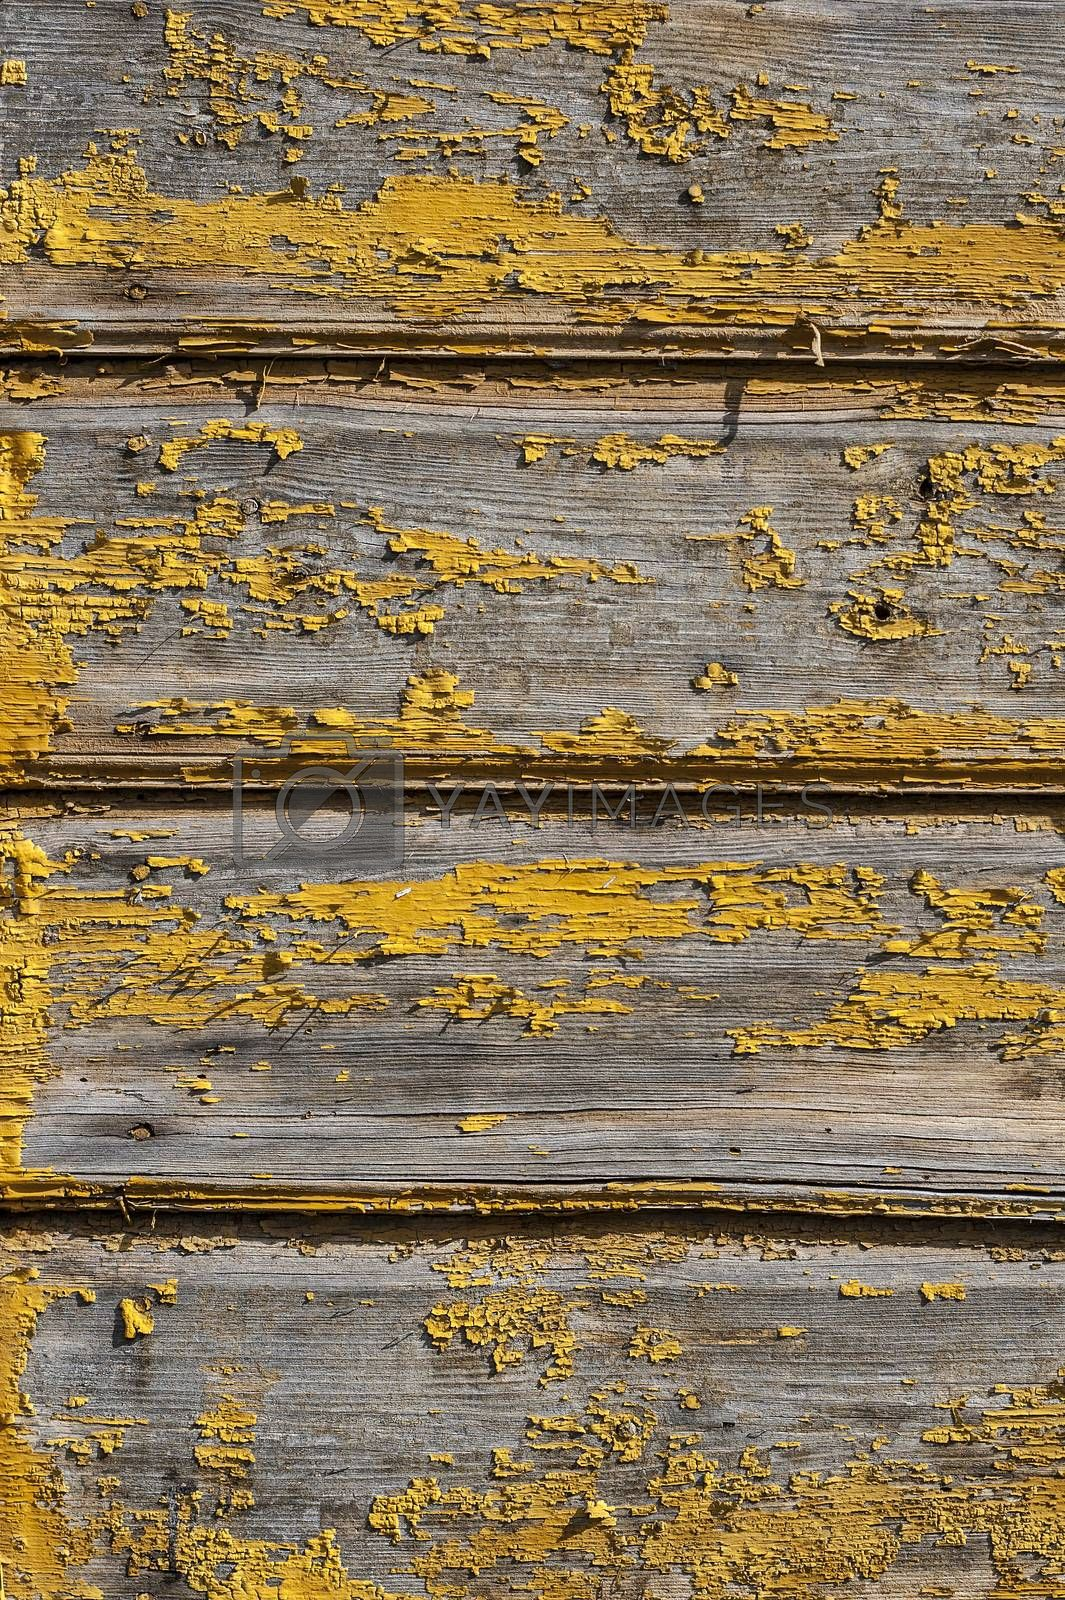 Rustic background made of wall of old wooden house with fall off yellow paint